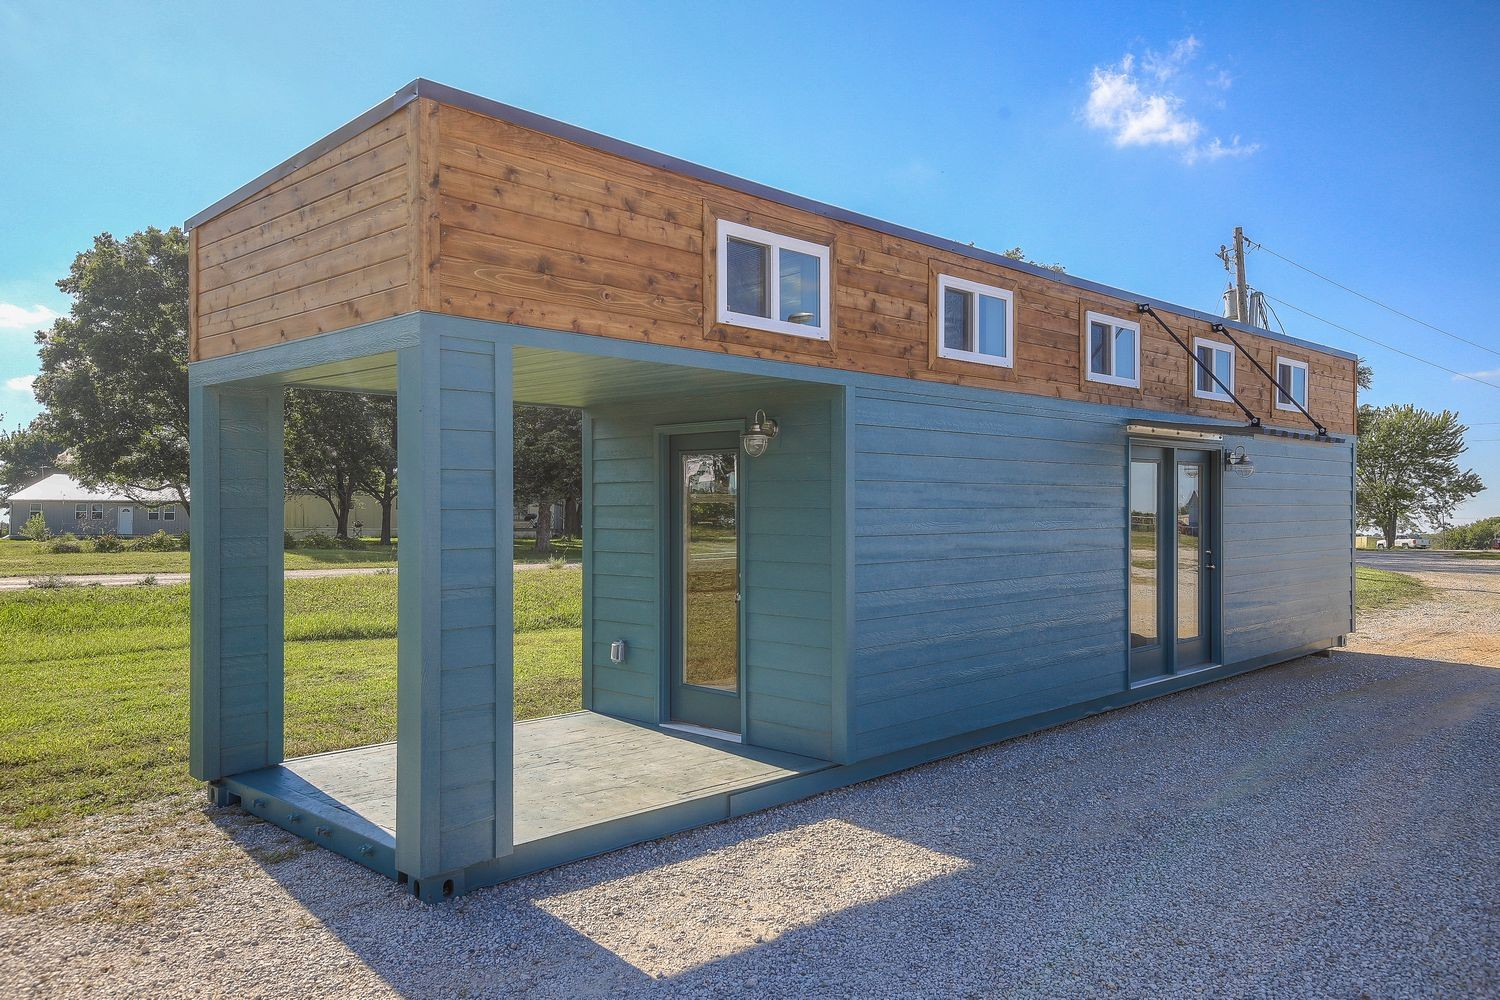 5 shipping container homes you can order right now - curbed